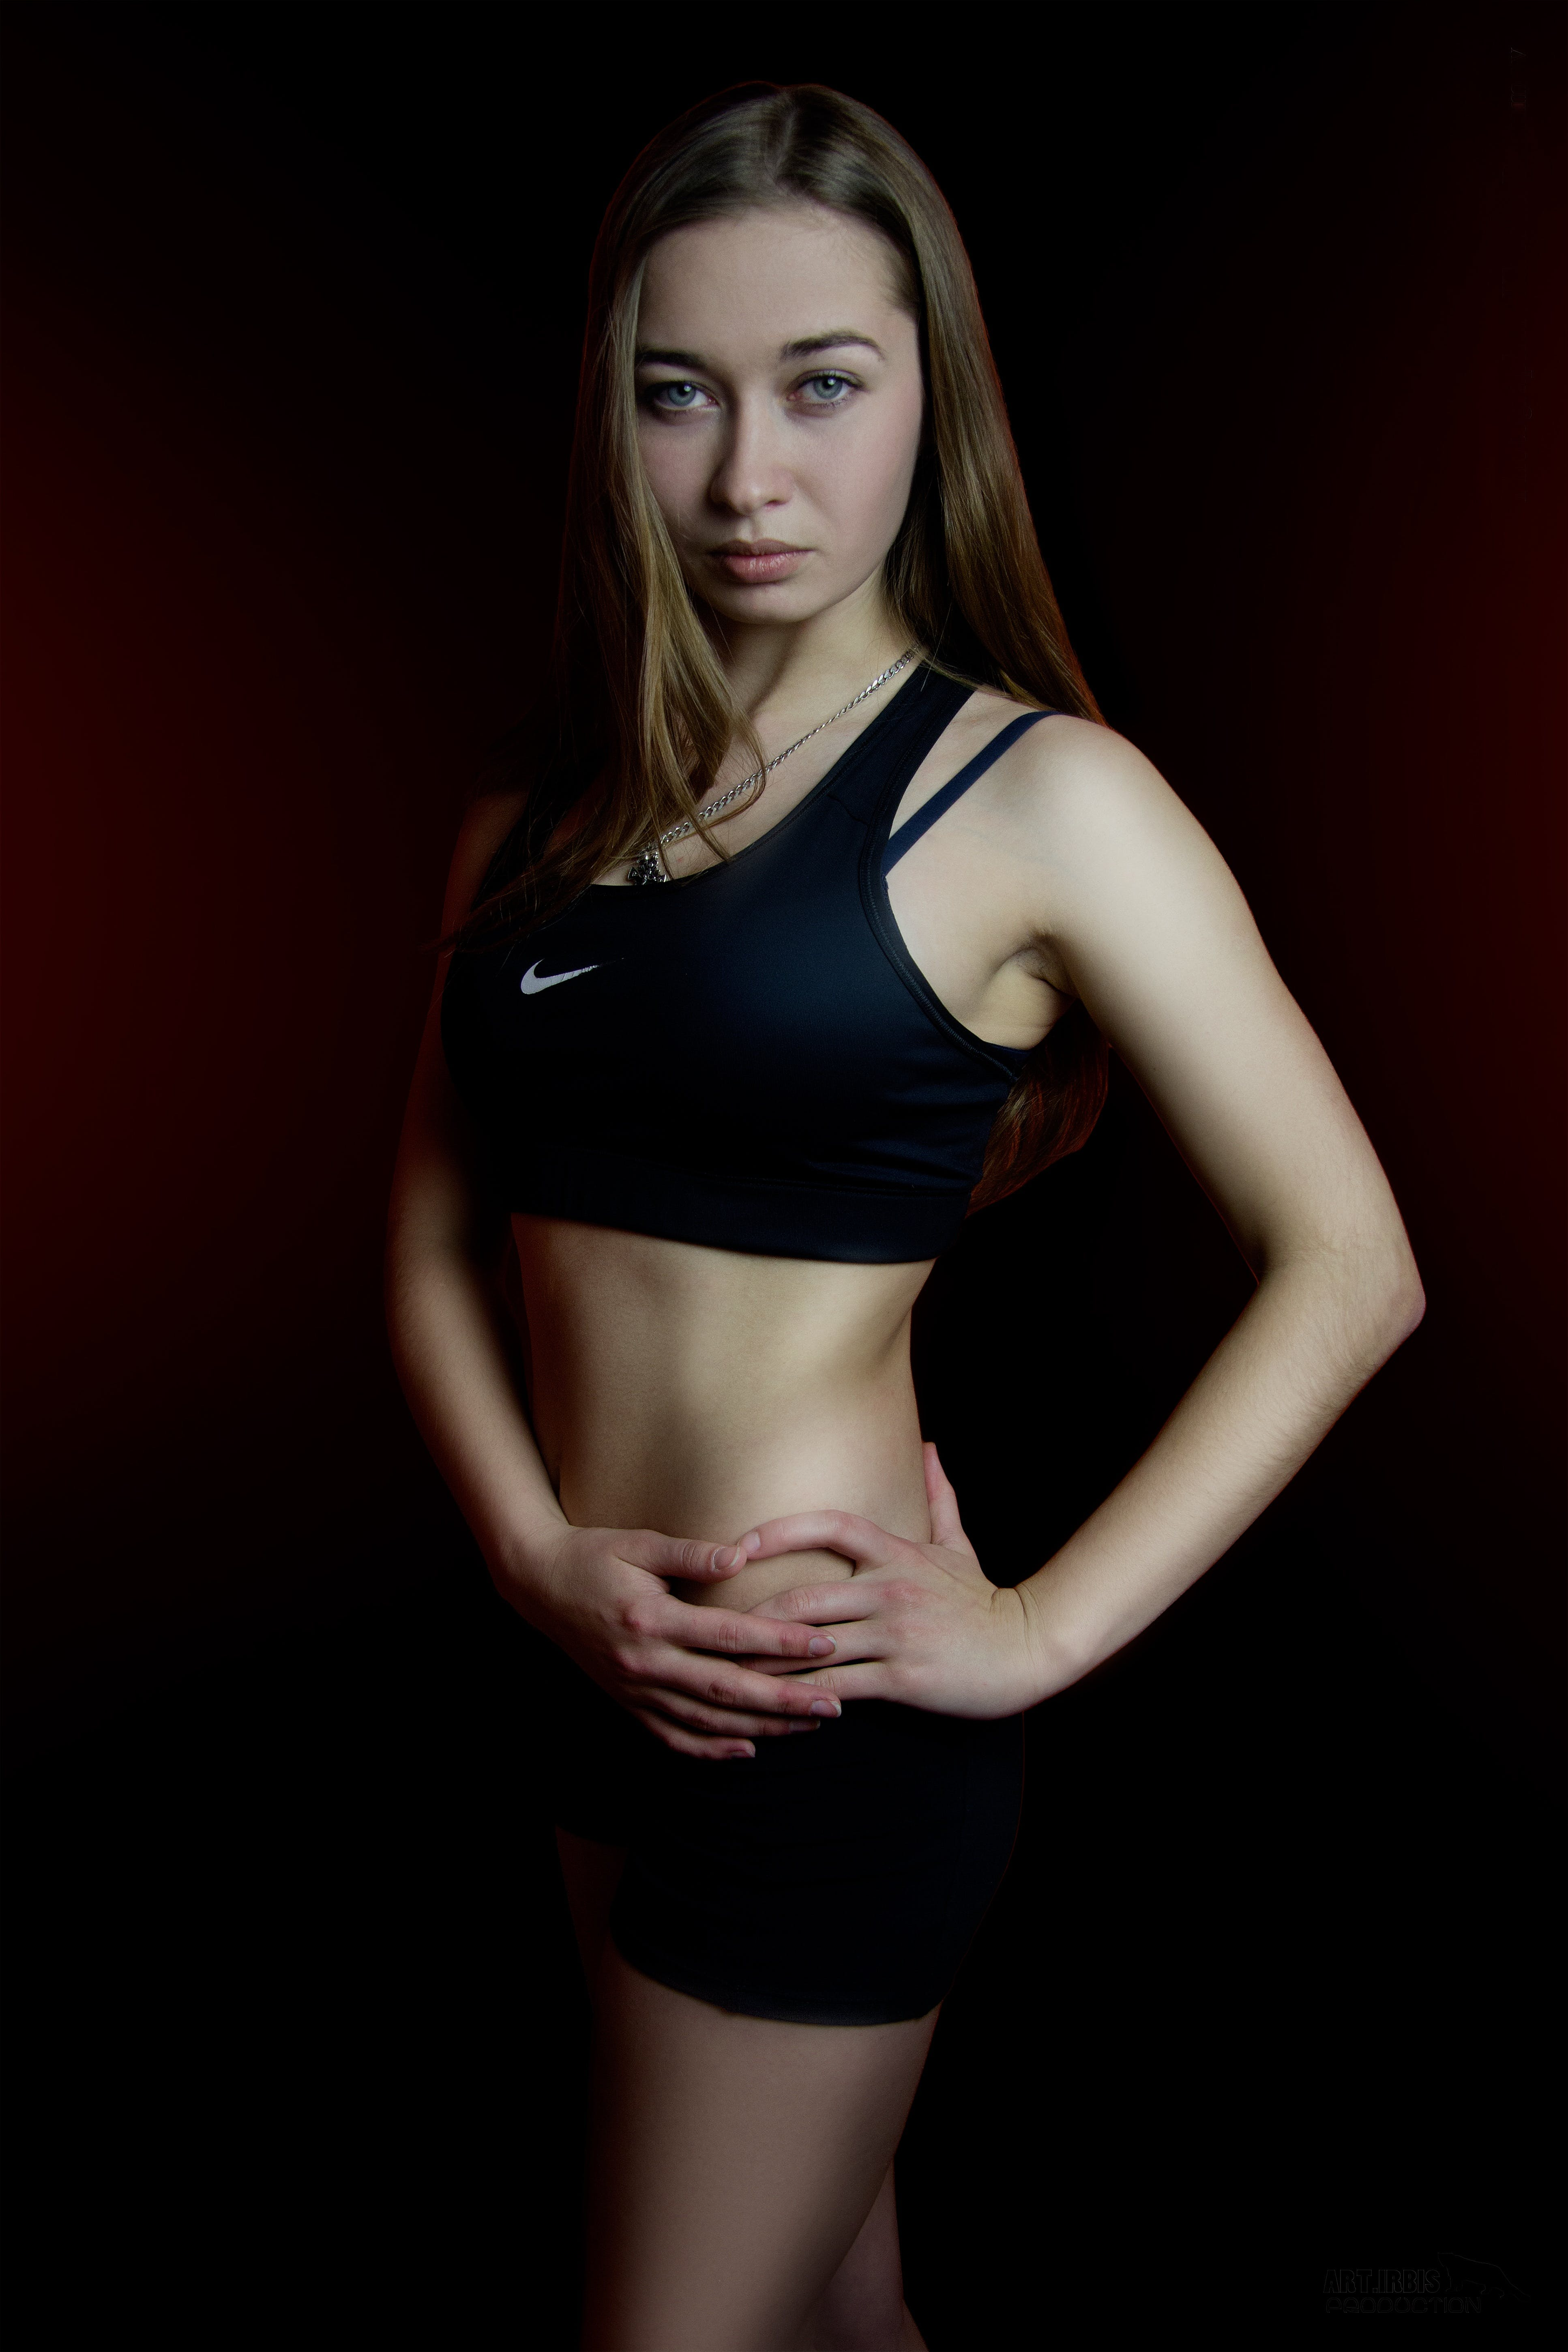 Woman in Black Nike Sports Bra